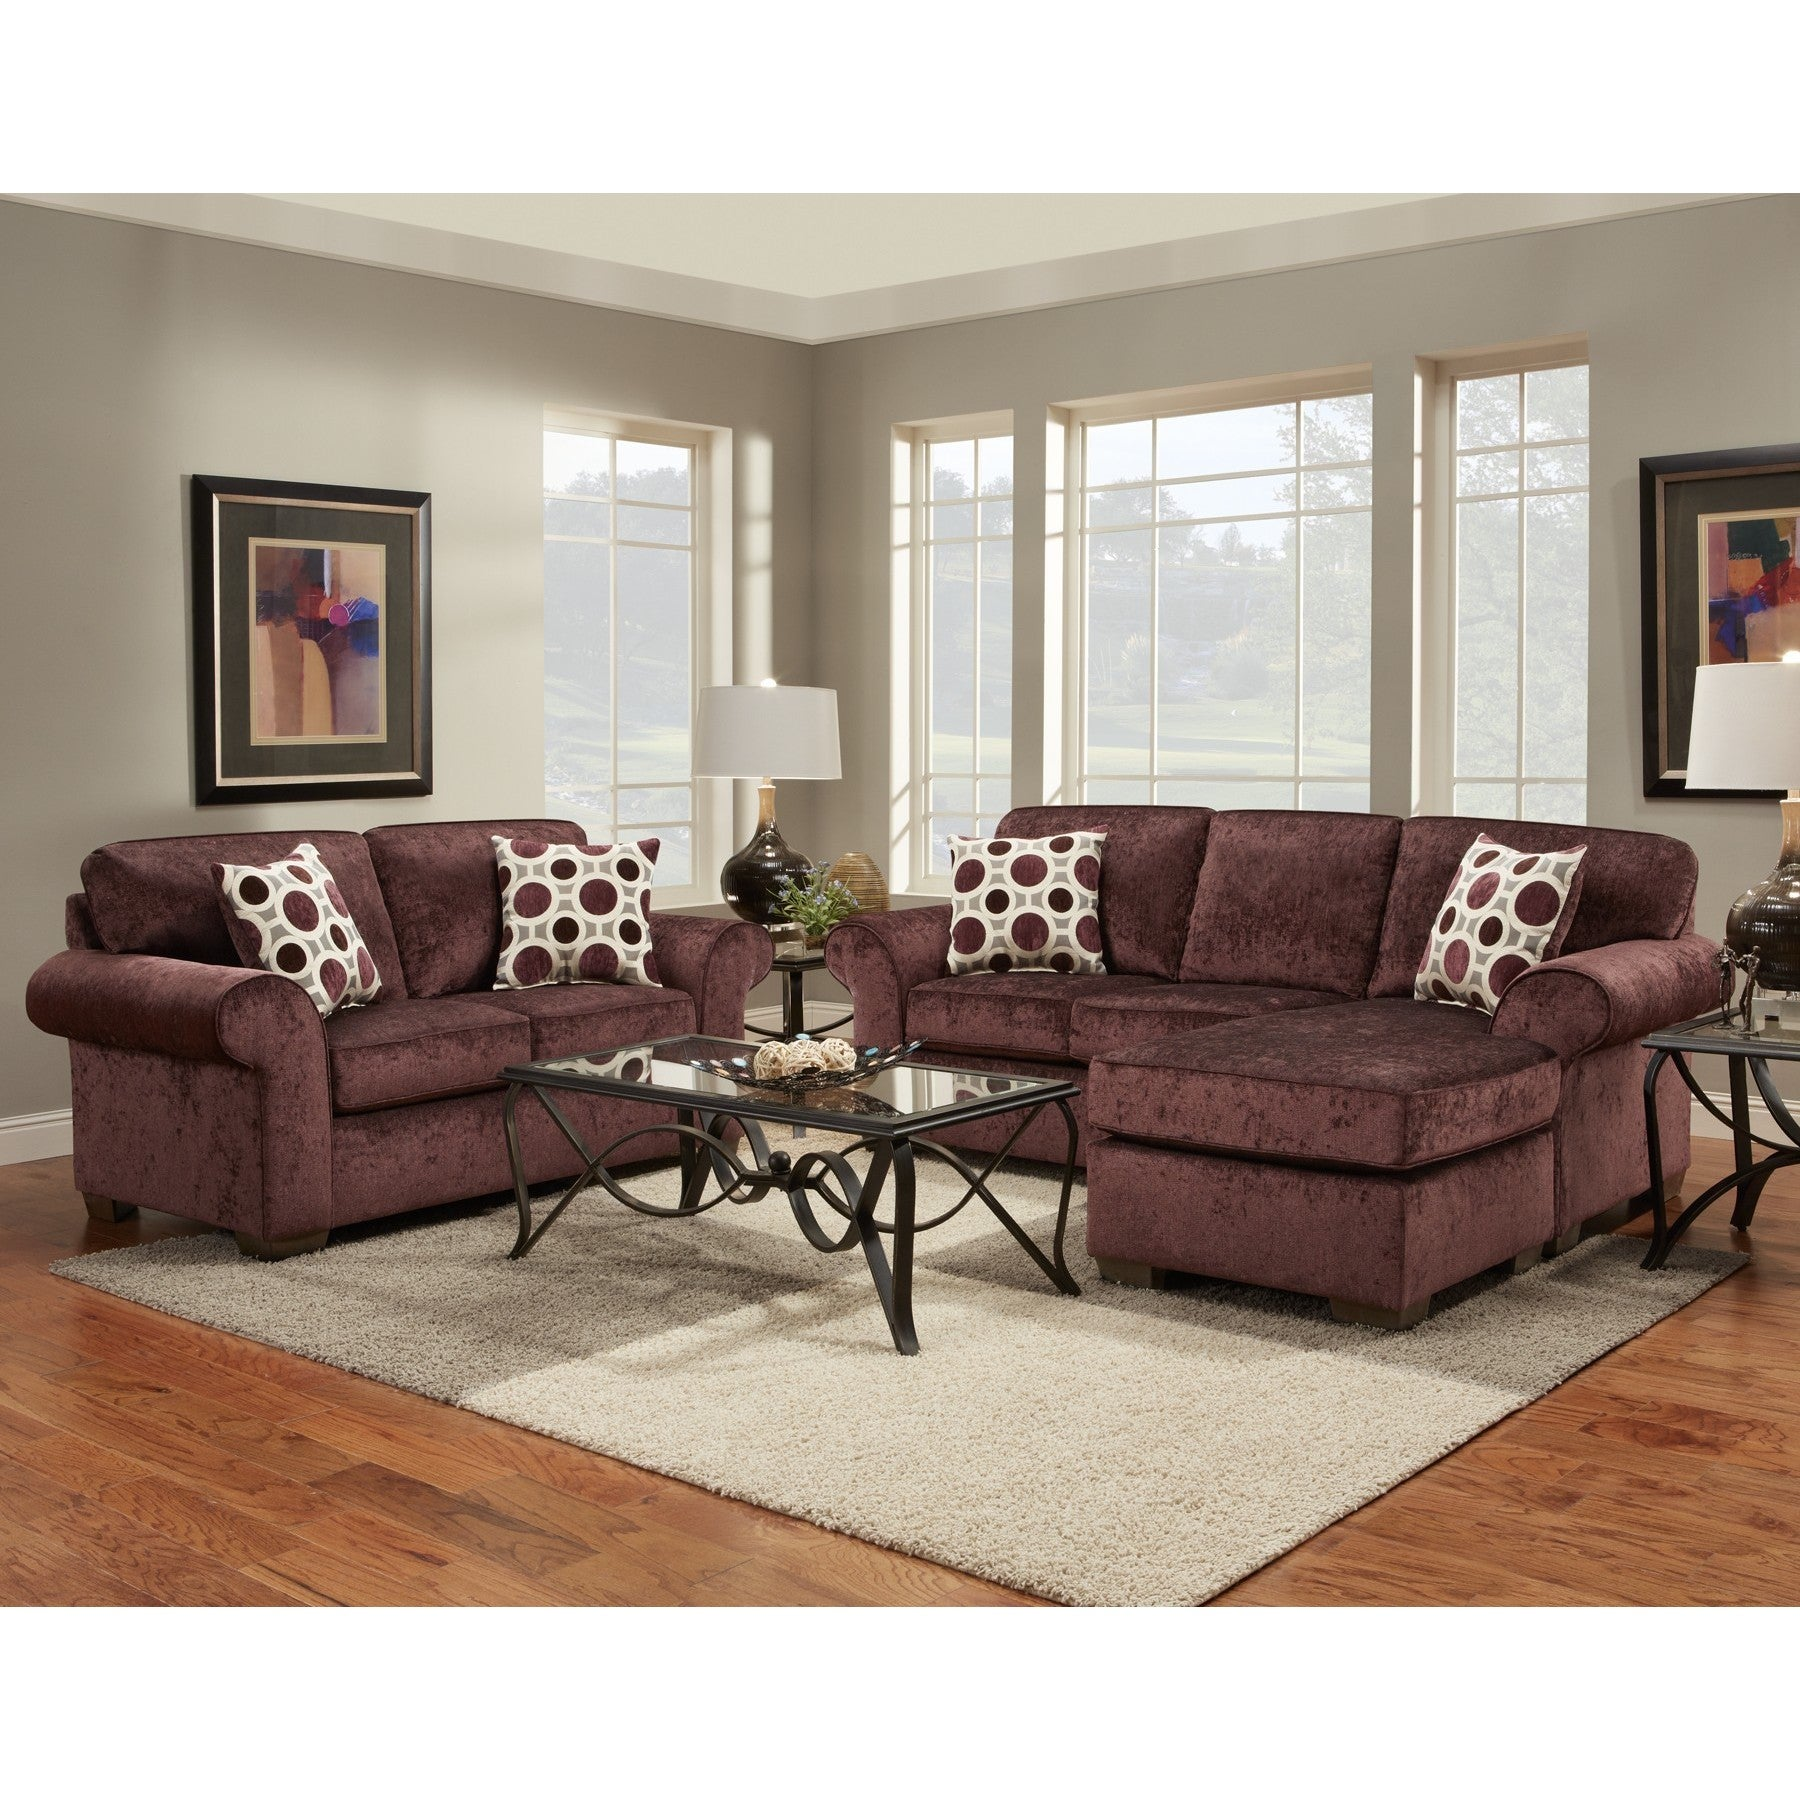 Chloe 2-Piece Burgundy Chaise Sofa and Loveseat Set (Chlo...